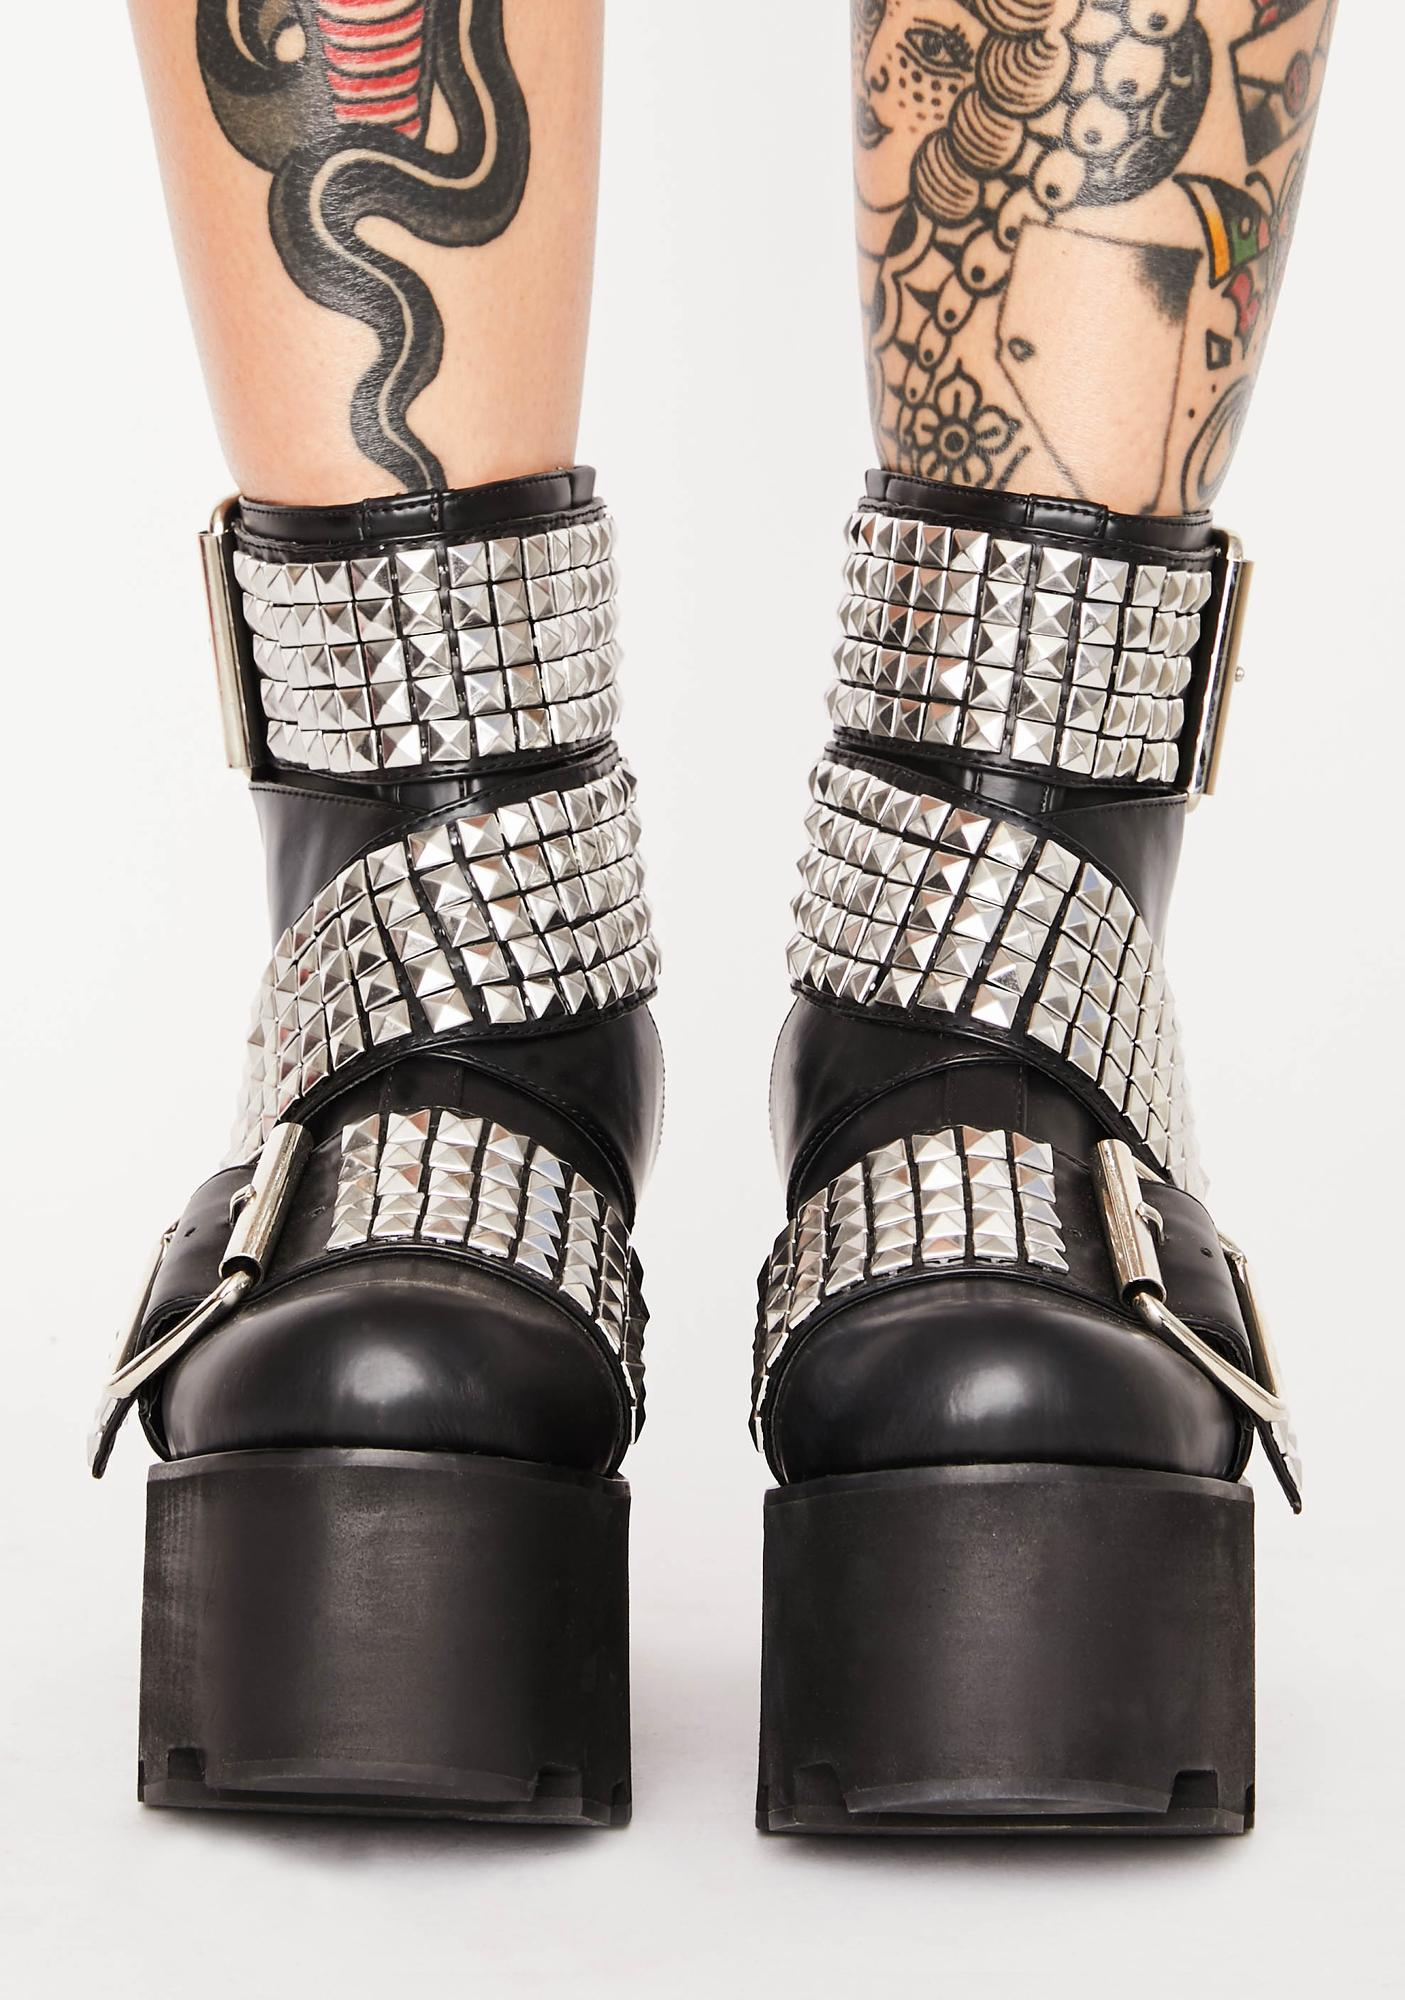 Charla Tedrick Siouxsie Ankle Boots